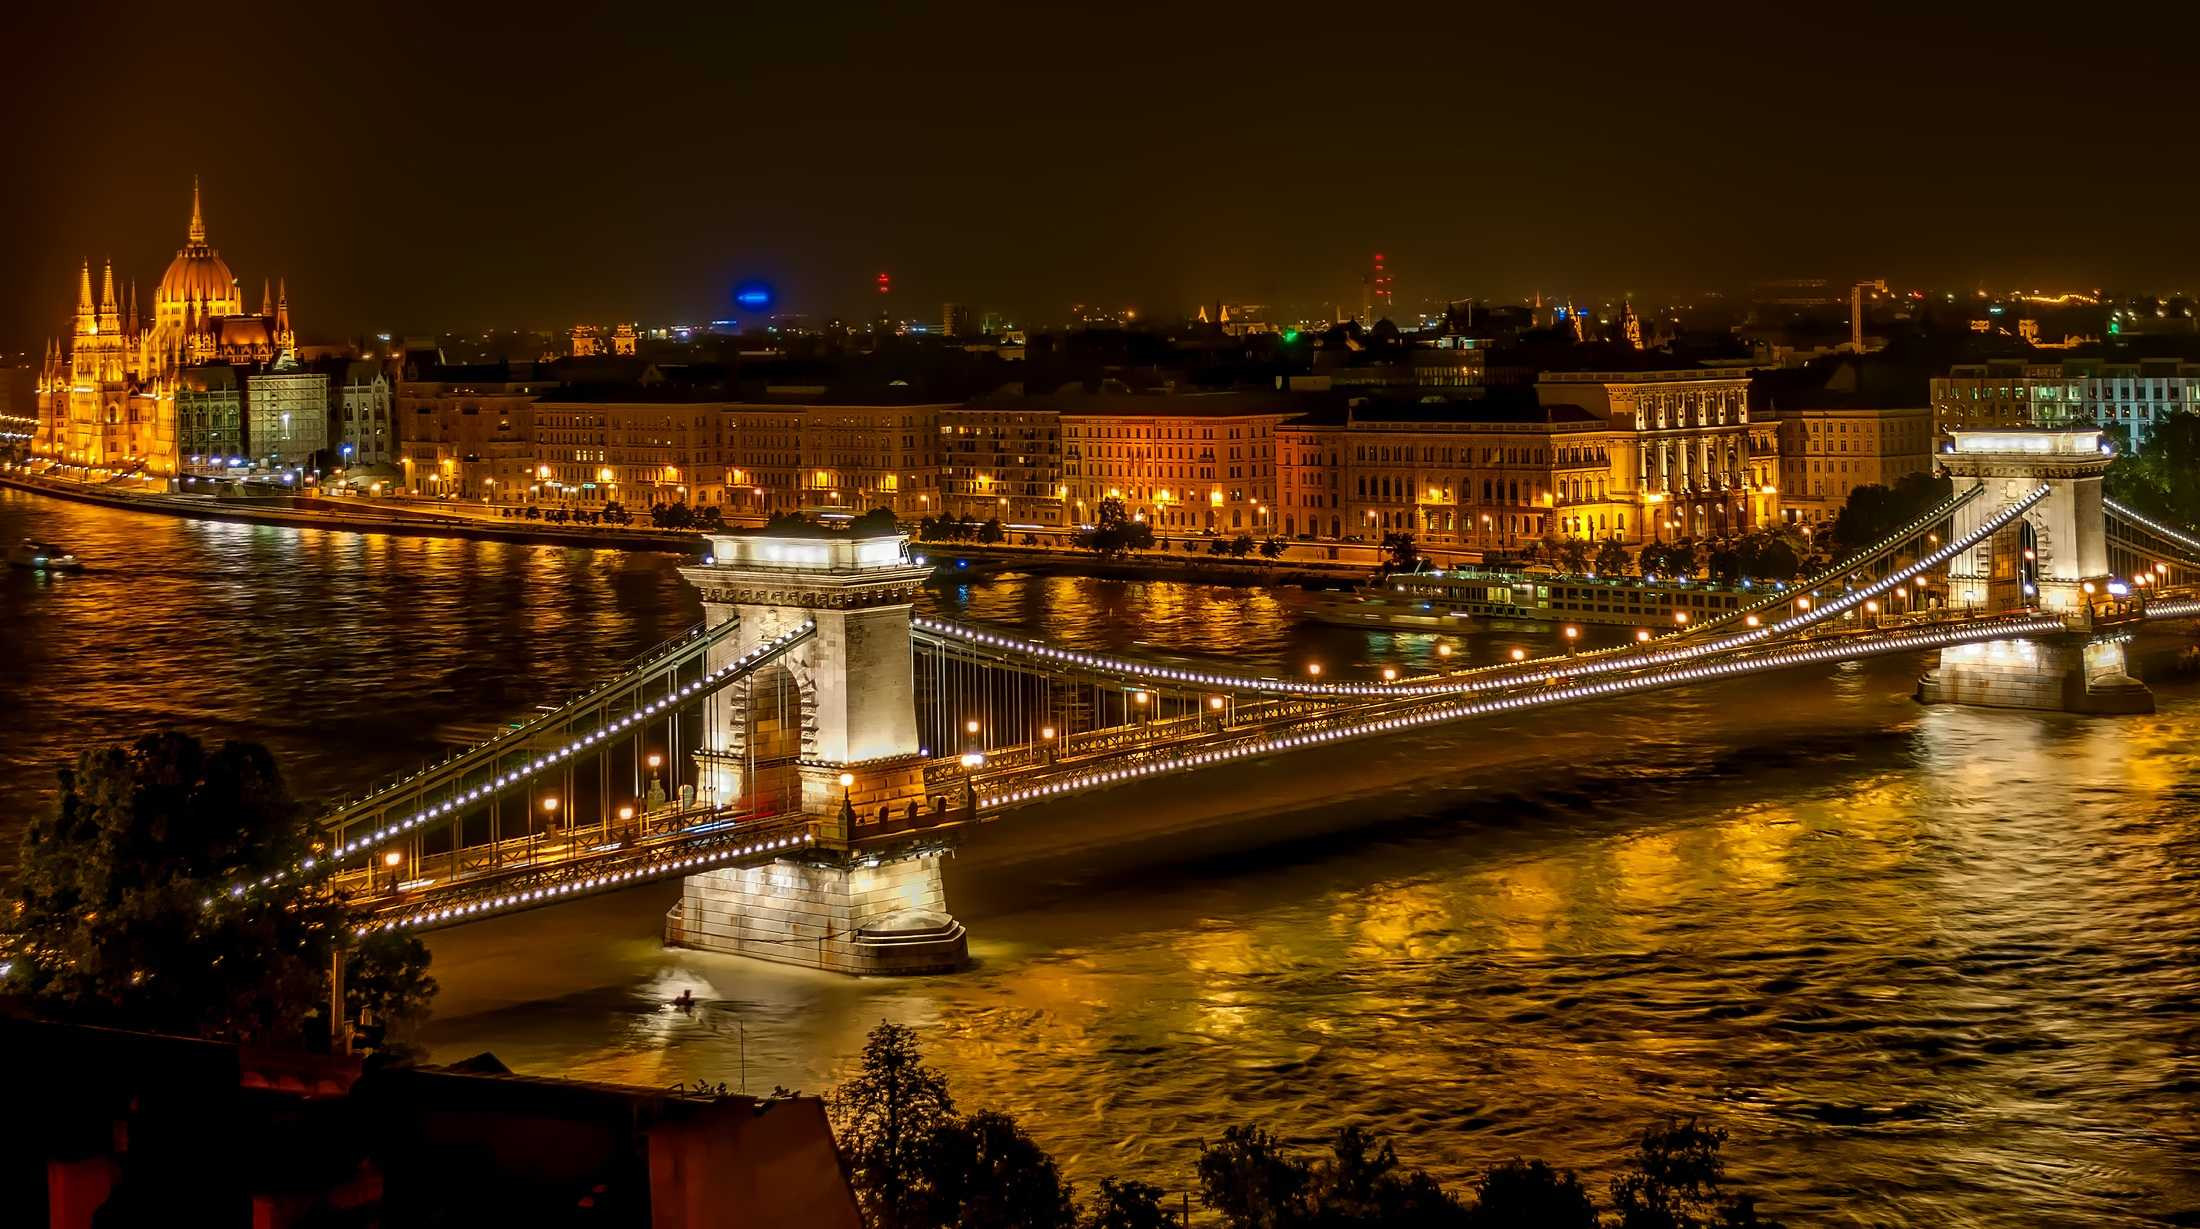 original_szechenyi-chain-bridge-1758196